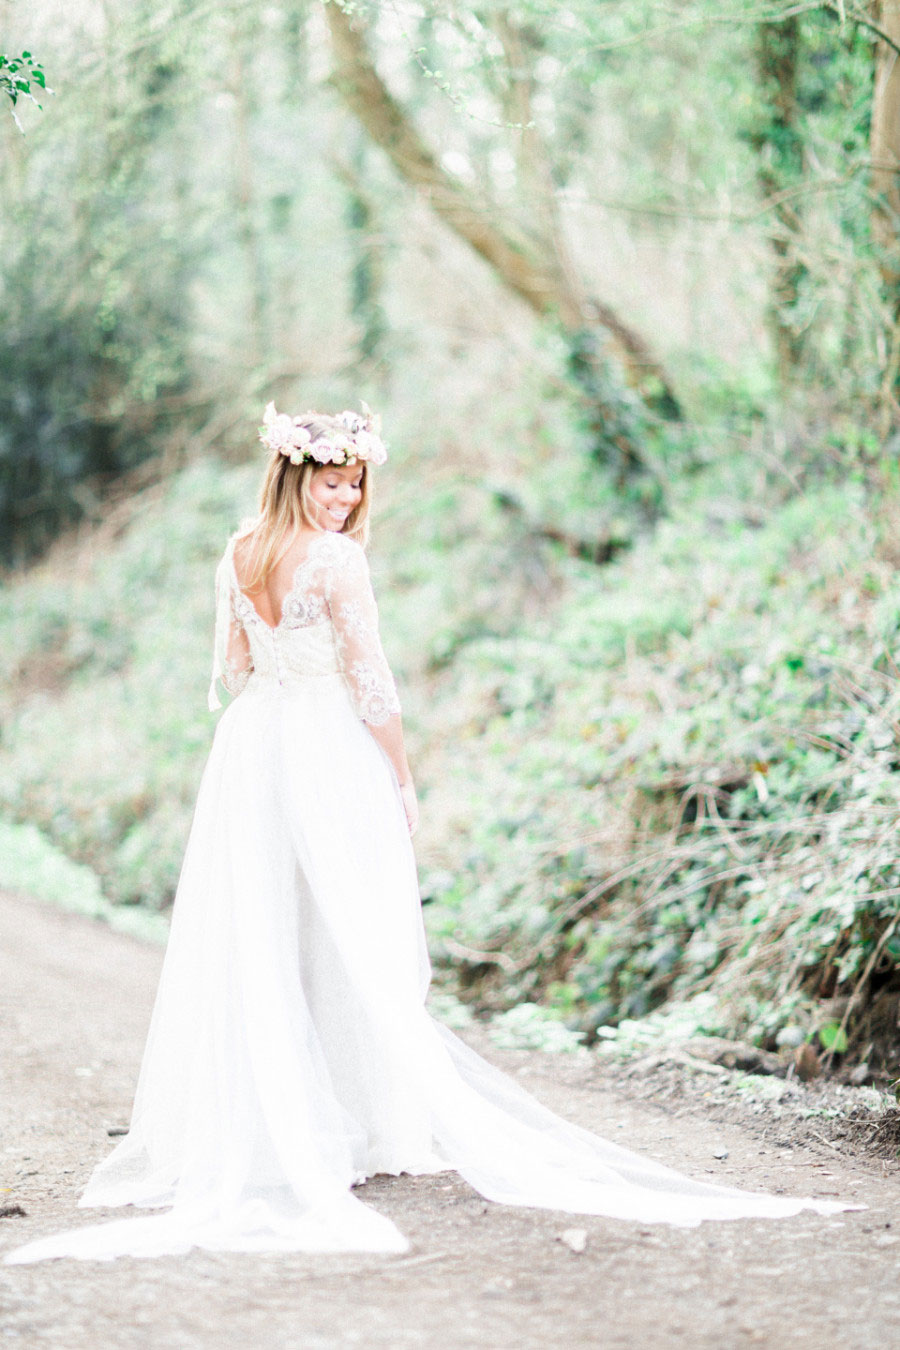 Alone In The Woods Bridal Editorial0010